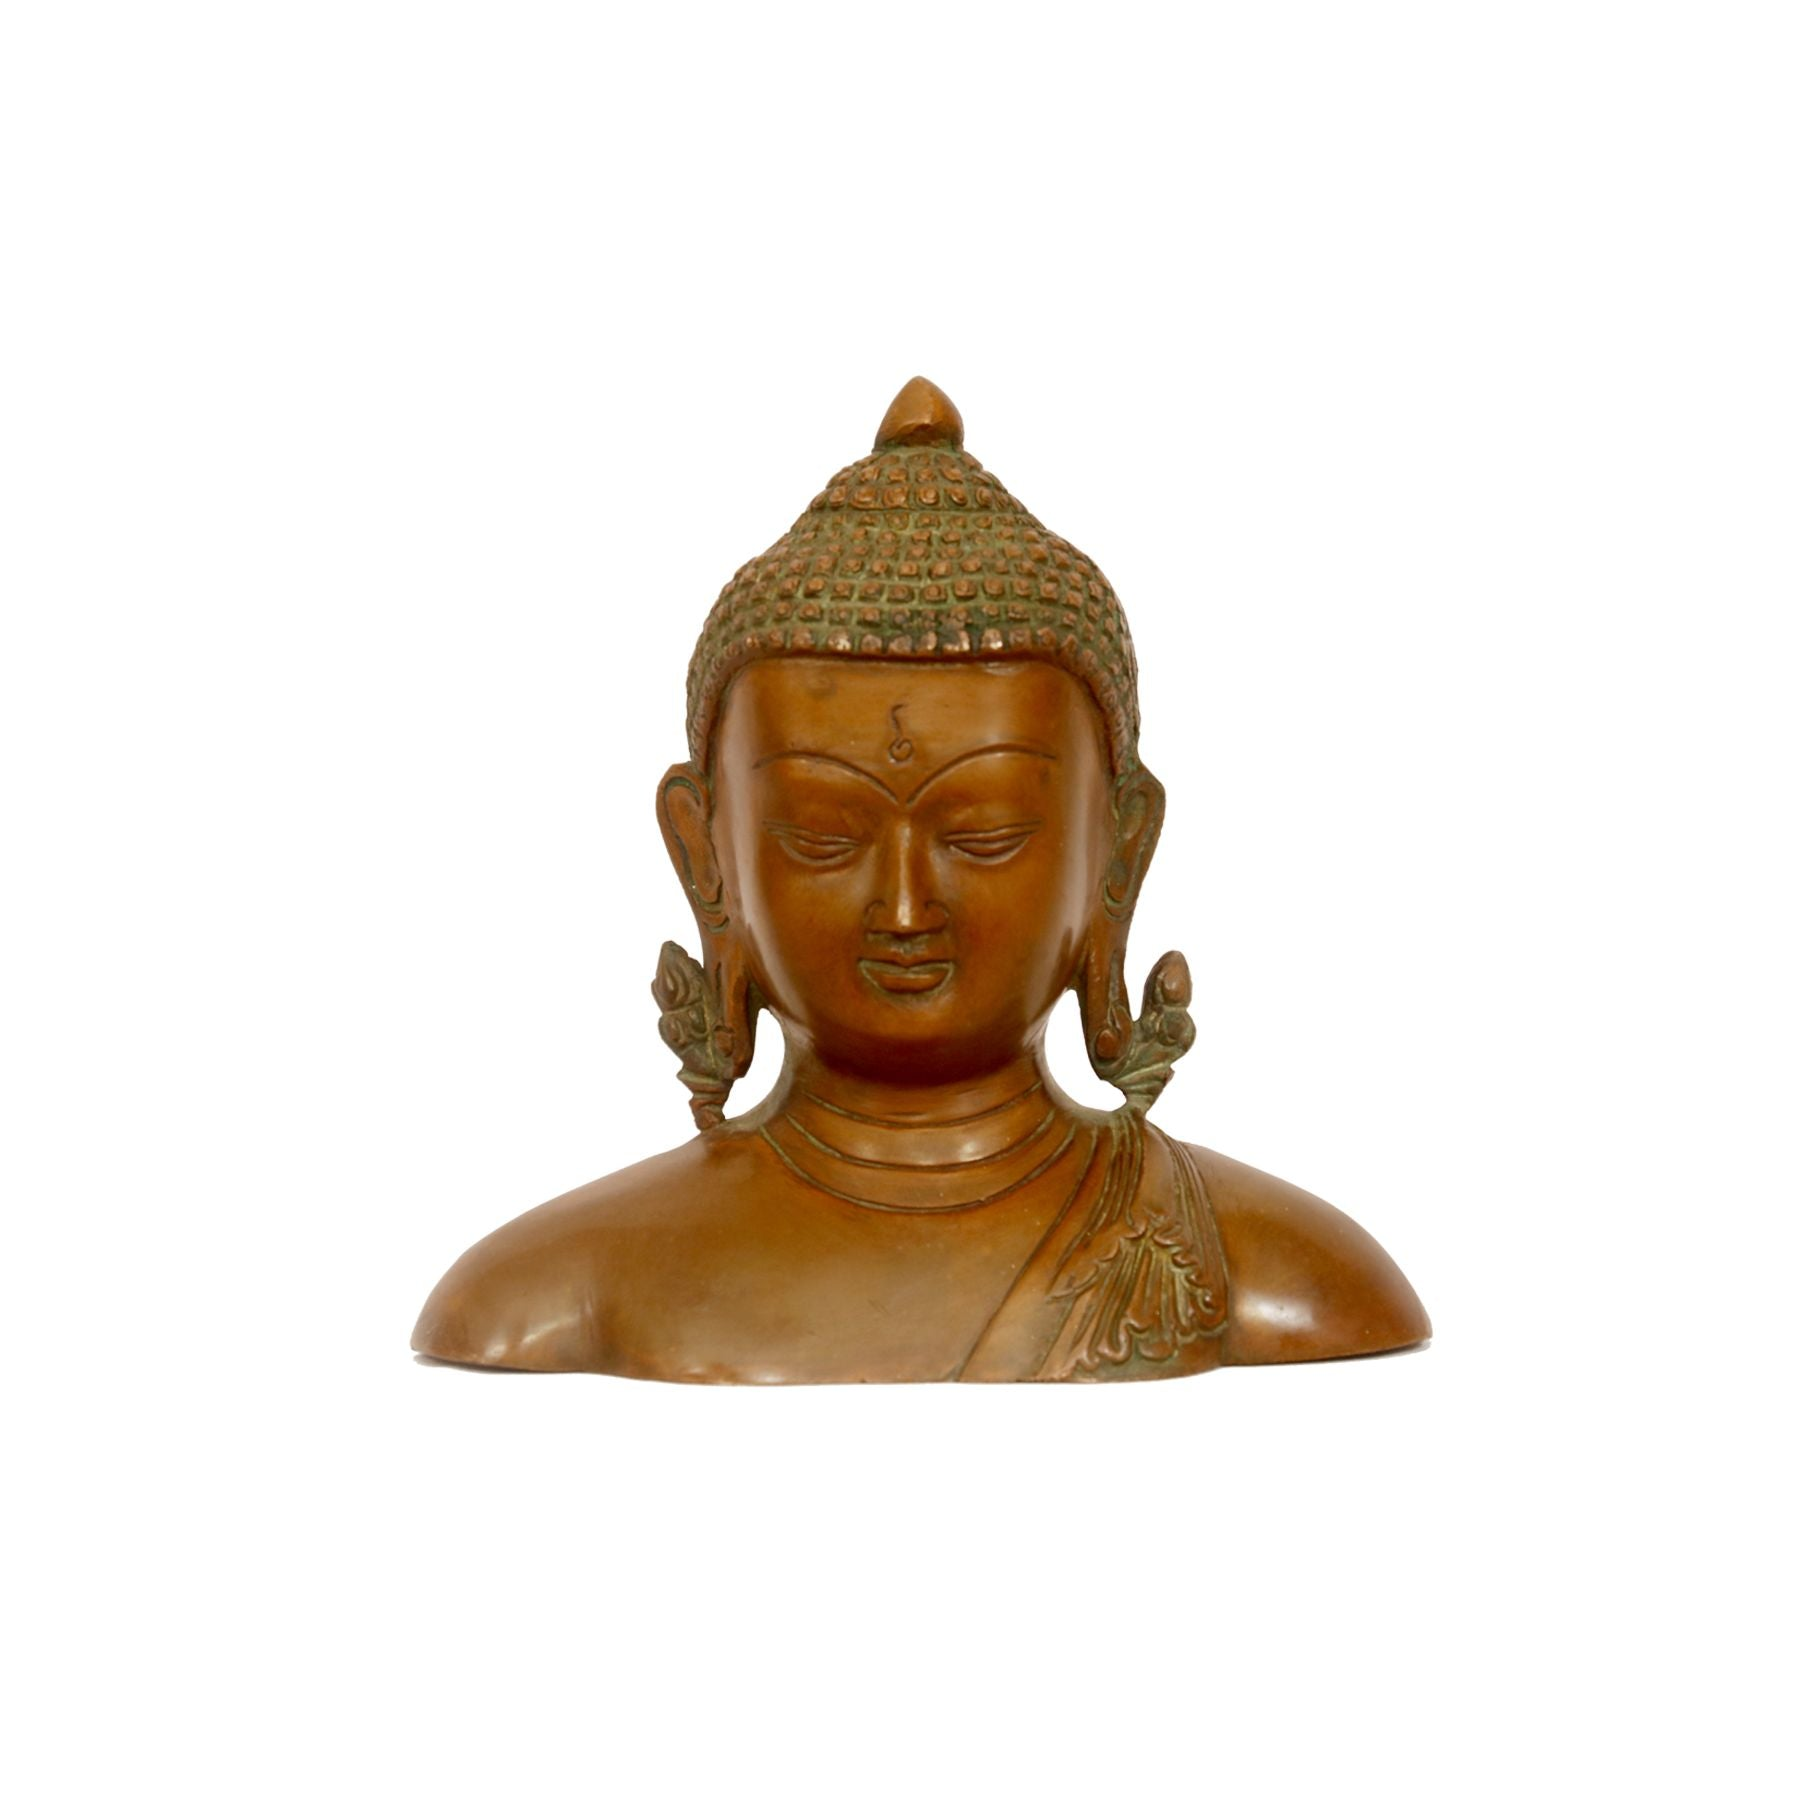 Antique Solid Metal Buddha Bust/Head Statue